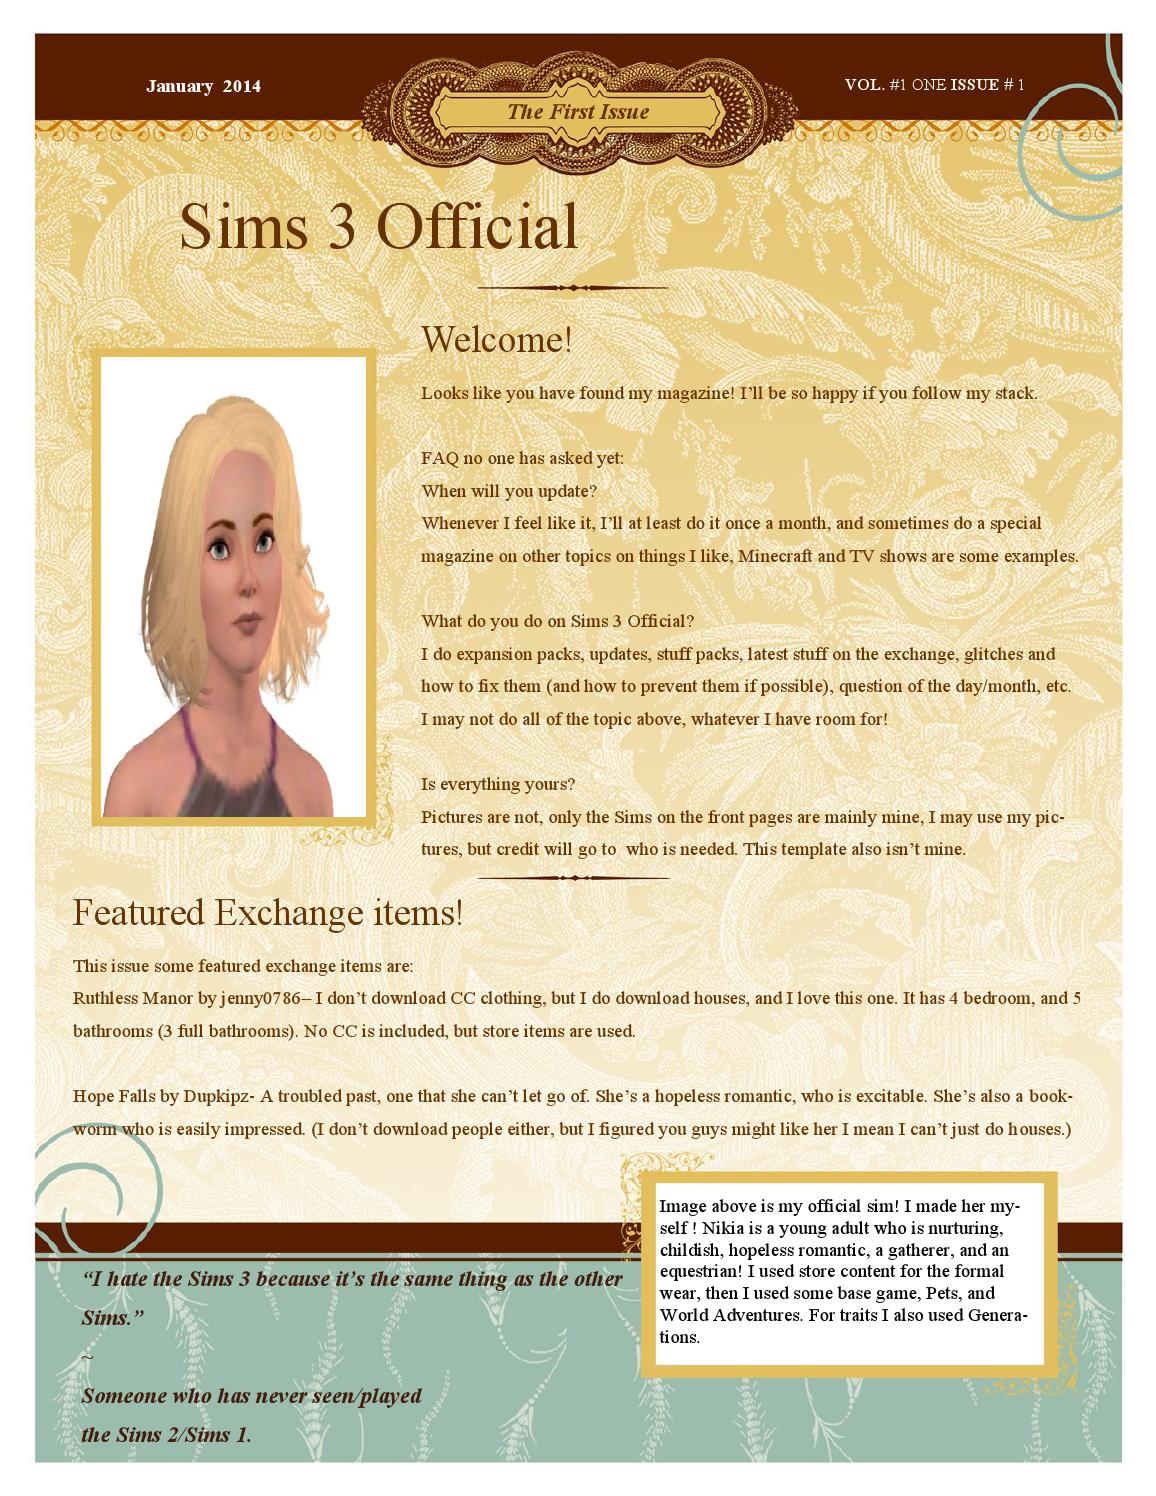 Sims 3 Offical by Makayla Stone - issuu